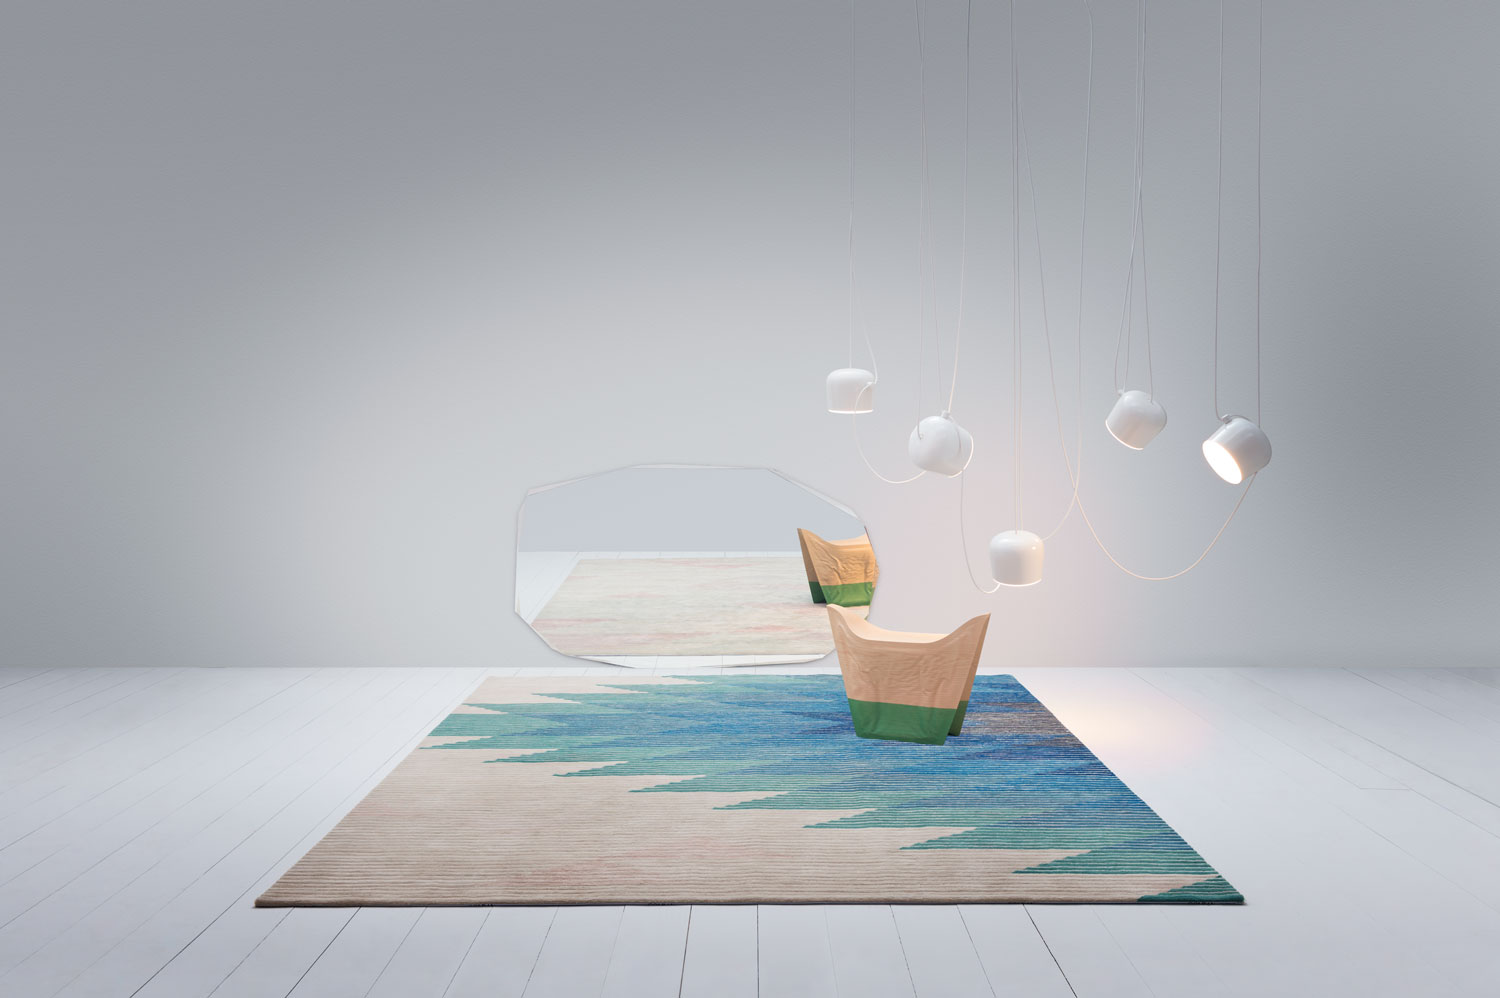 The New Lake Collection by Raw Edges for Golran at Maison & Objet 2015 | Yellowtrace